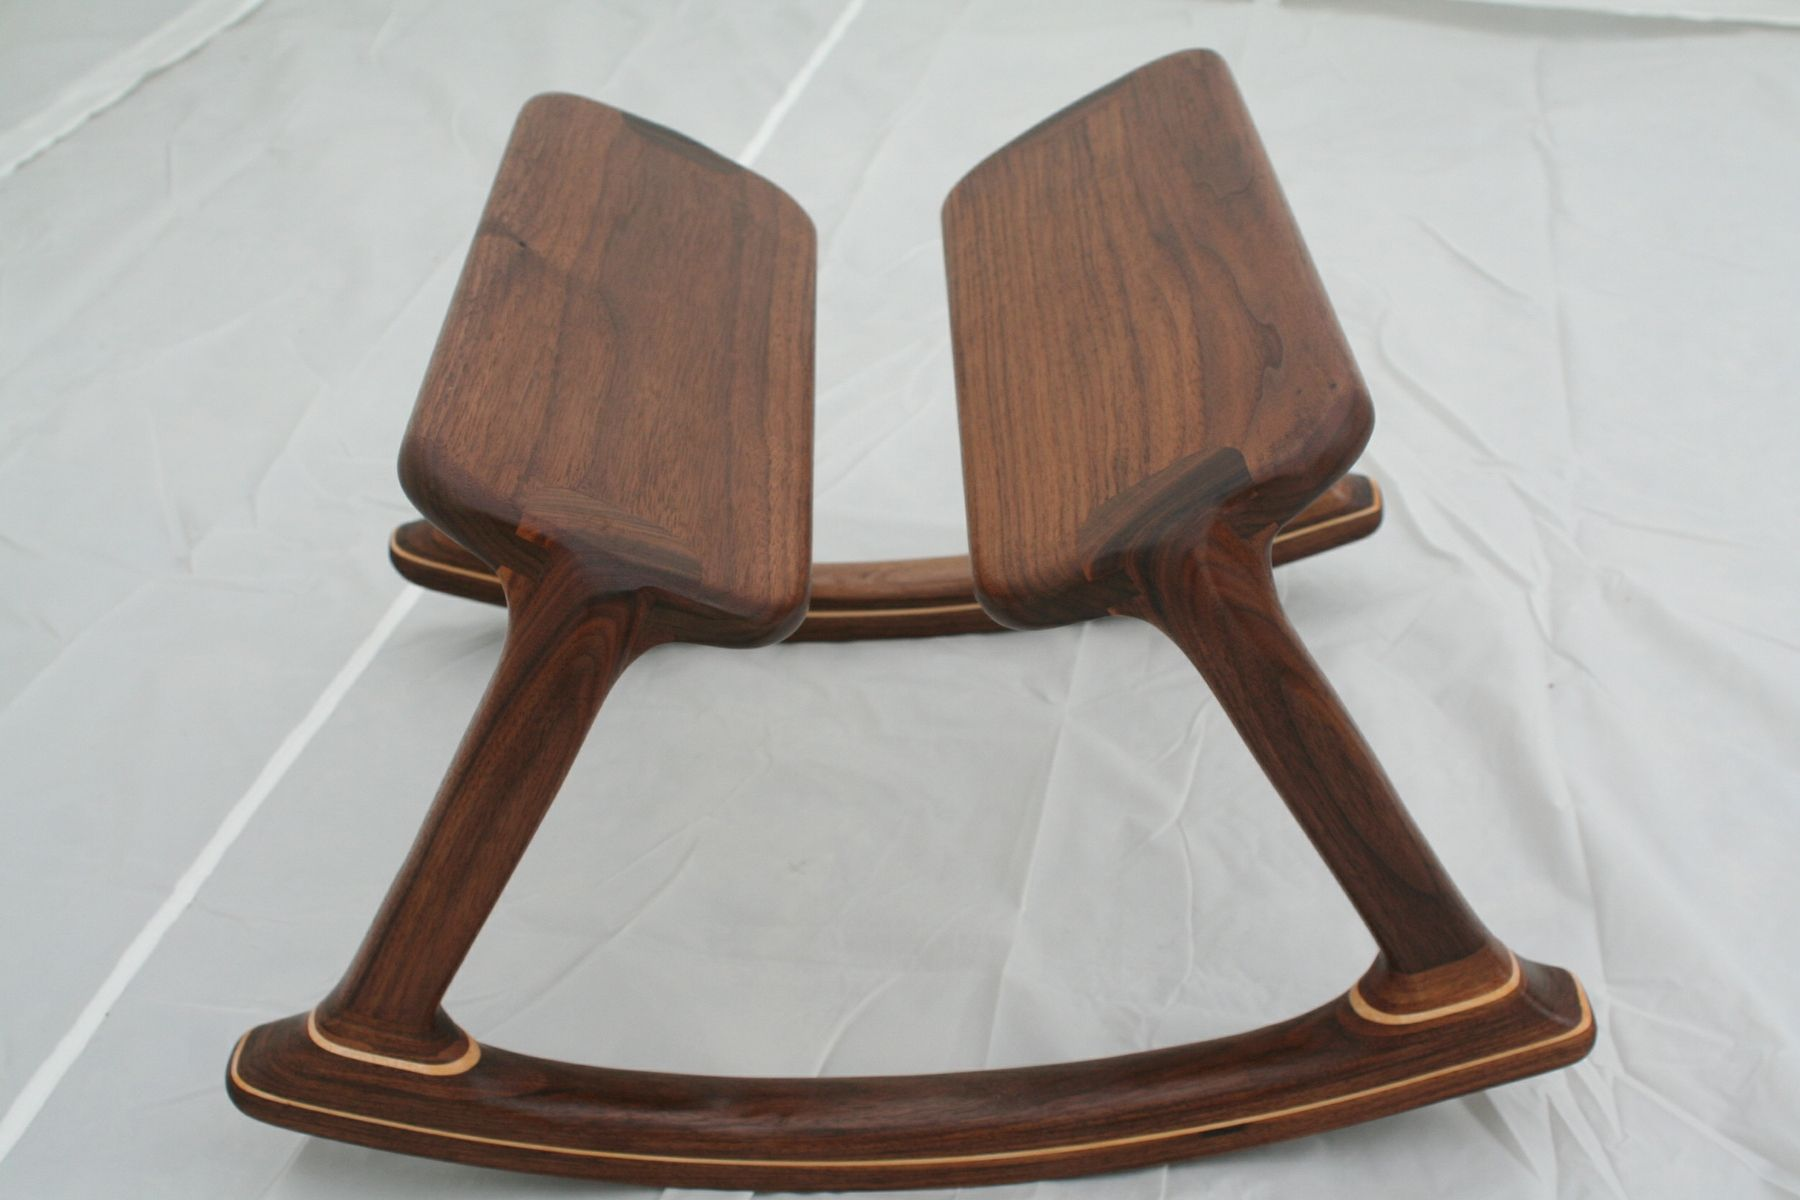 Wooden chair furniture - Walnut Rocking Footstool By Kevin Bosley